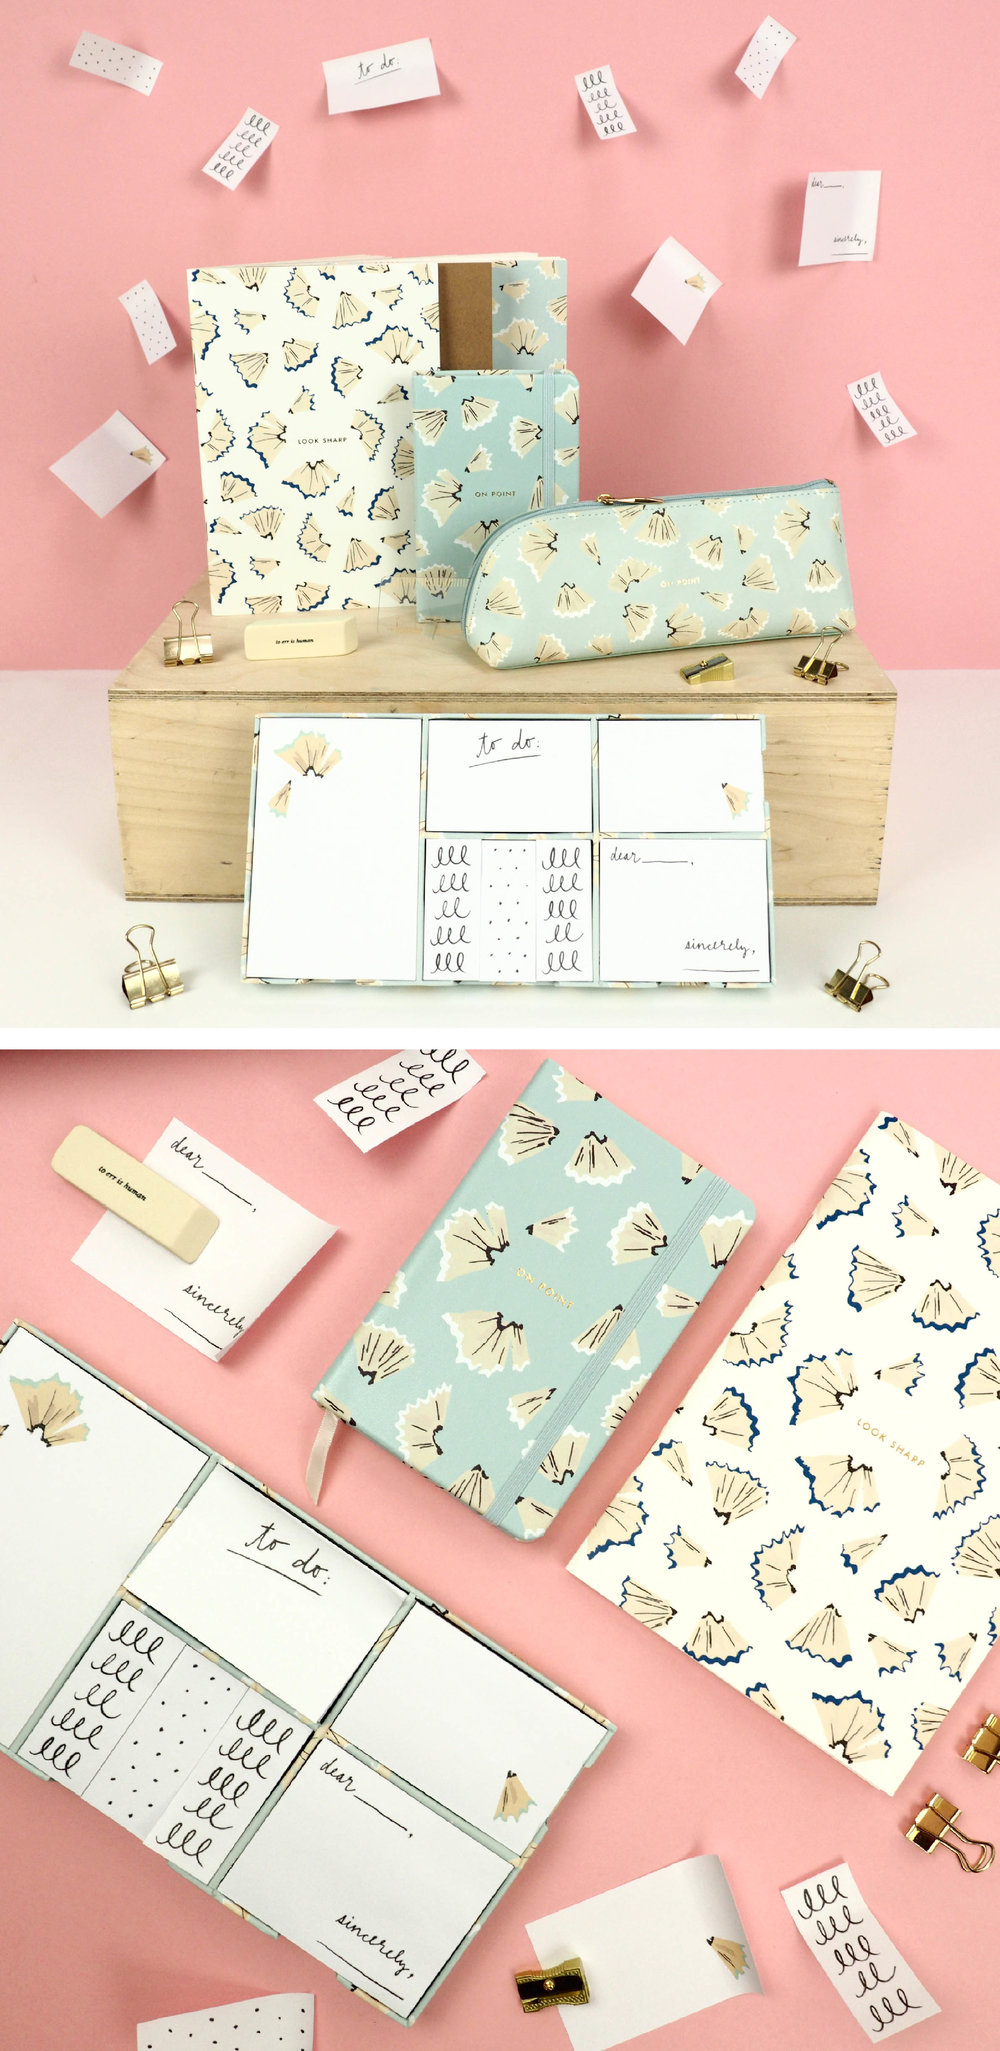 On point, kate spade range featuring the pencil shavings print